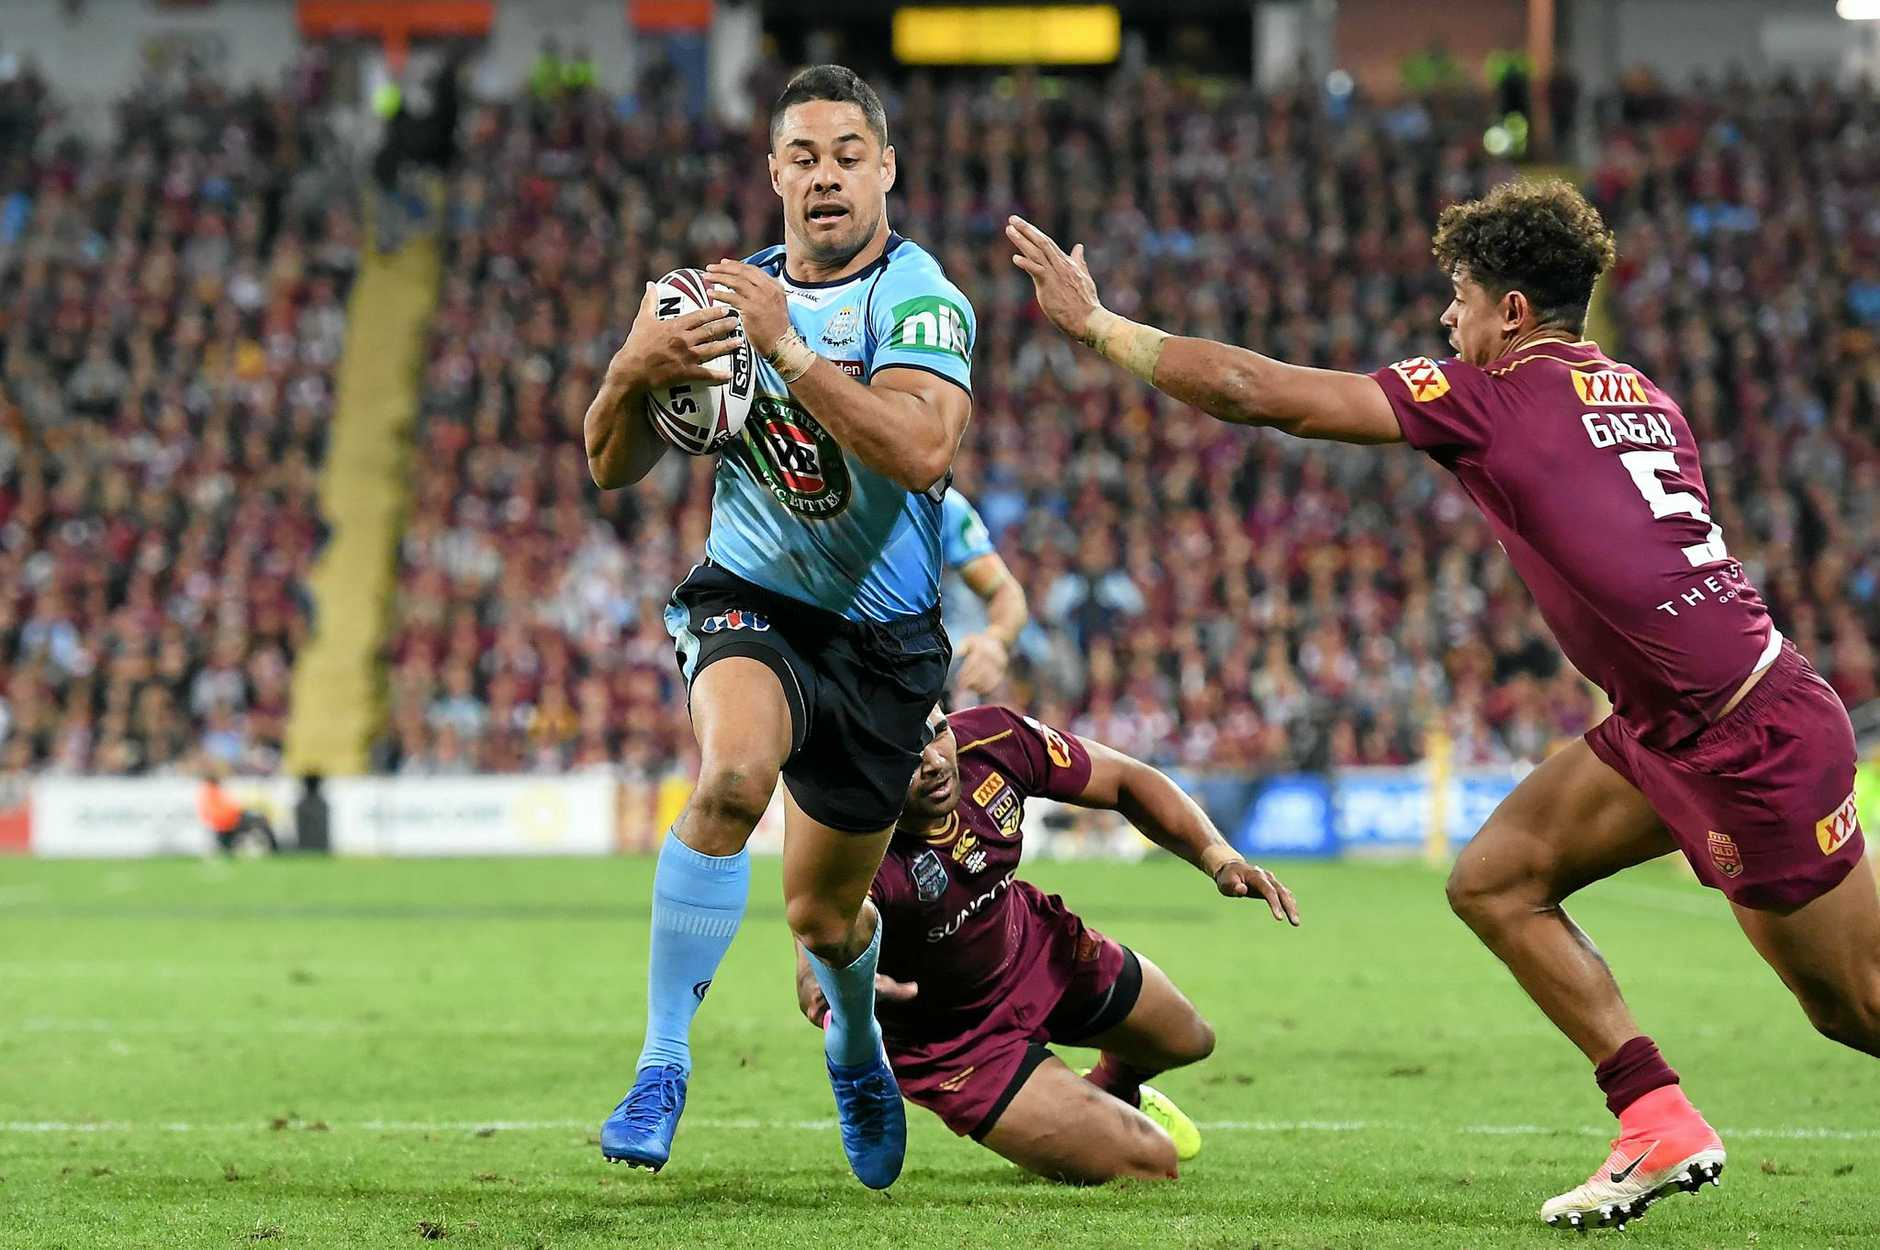 Jarryd Hayne of the NSW Blues runs to score a try during Game one of the State of Origin series against the Queensland Maroons at Suncorp Stadium in Brisbane, Wednesday, May 31, 2017. (AAP Image/Dan Peled) NO ARCHIVING, EDITORIAL USE ONLY